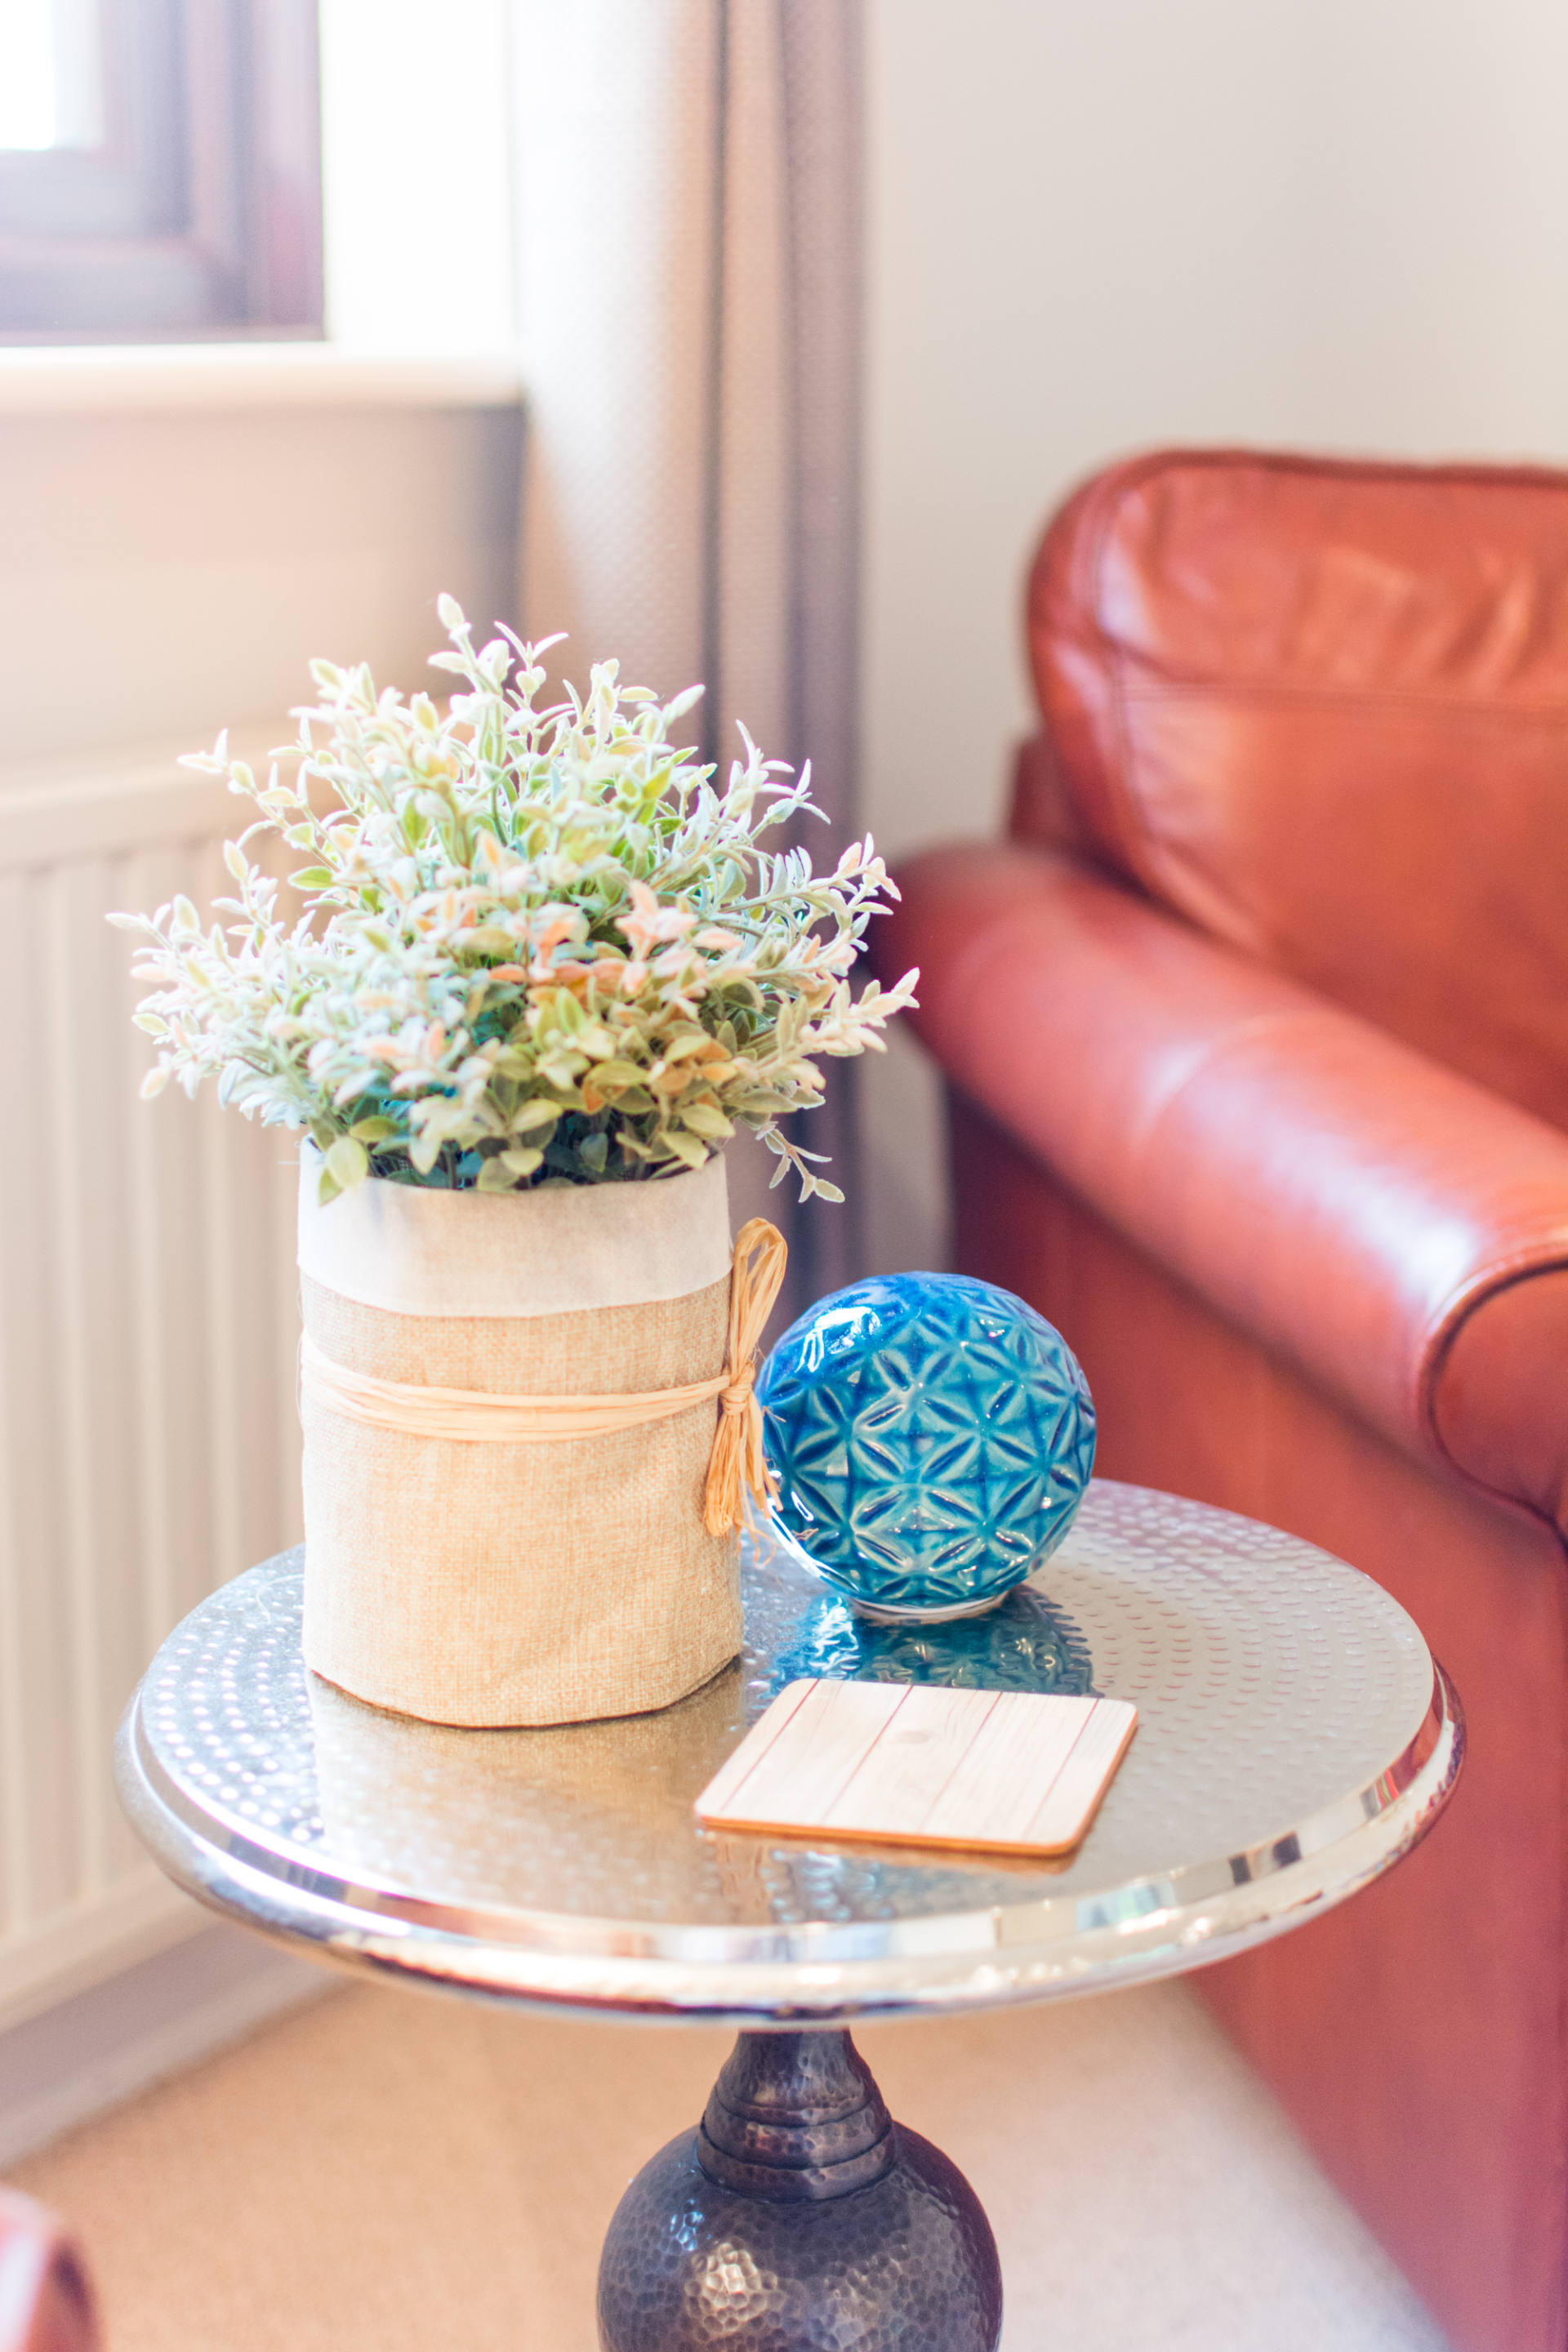 Coffee table and flowers next to red leather arm chair.